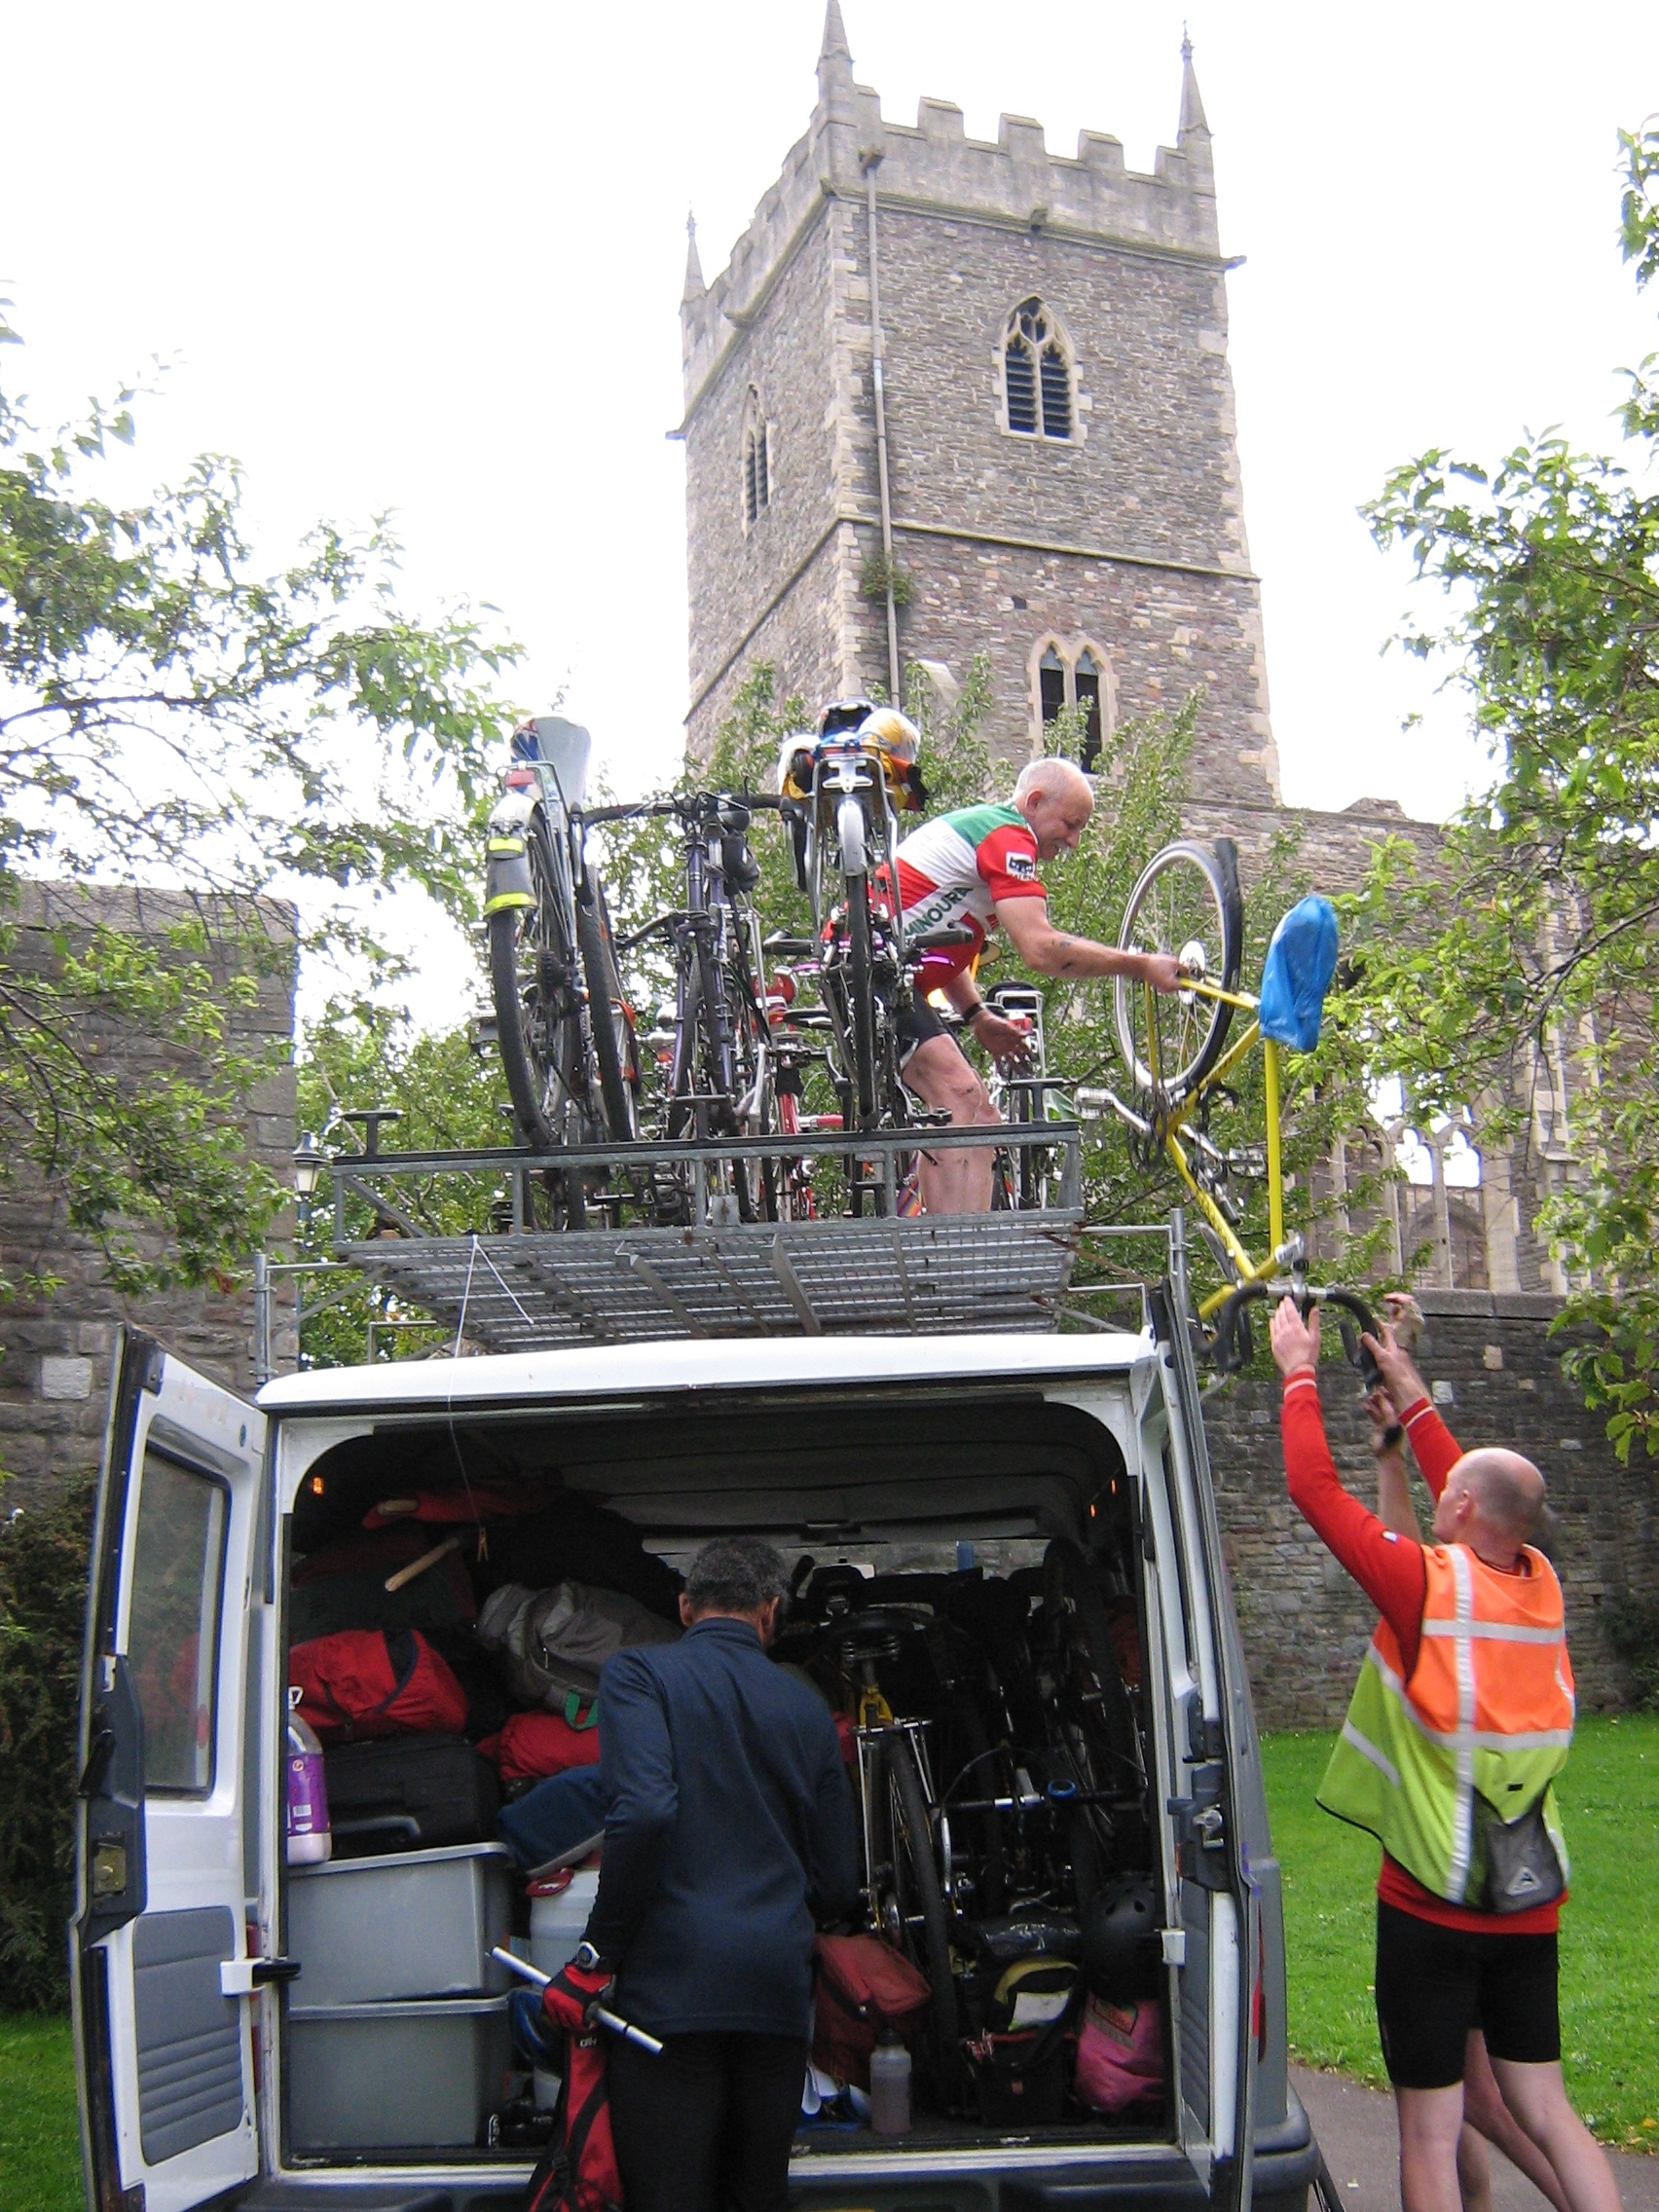 Charles and Chris load up the van